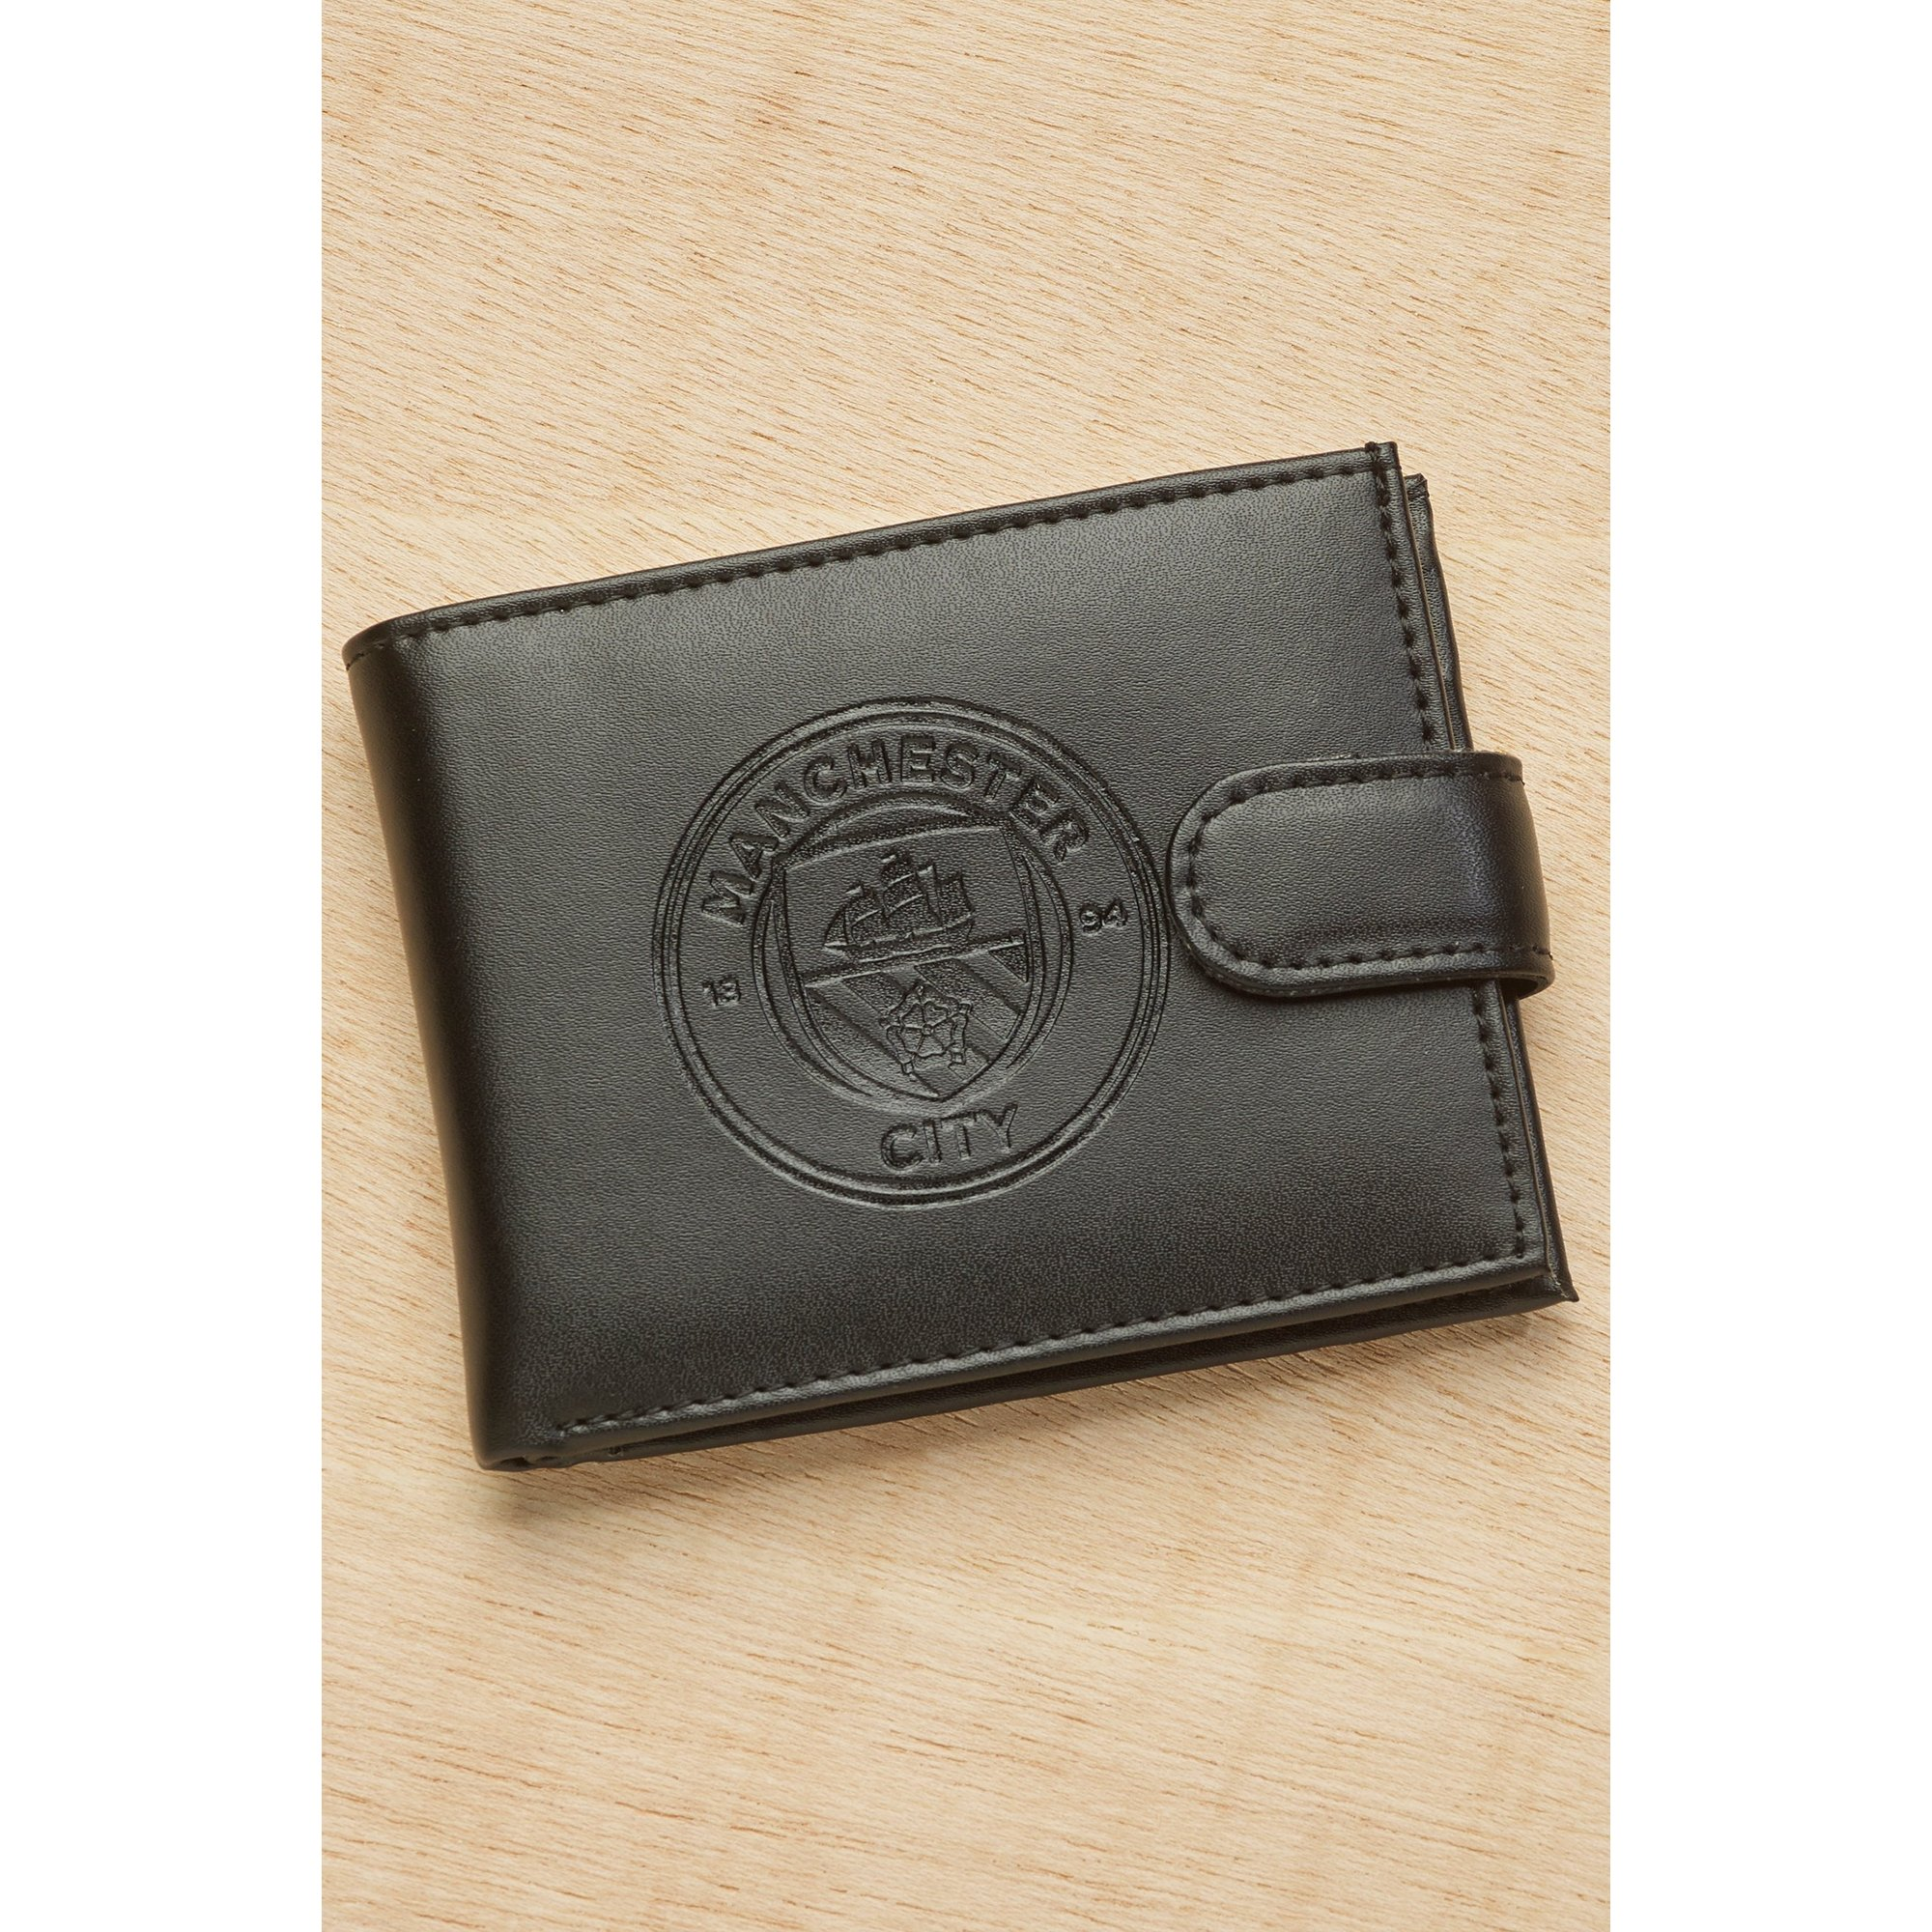 Image of Embossed Leather Wallet - Manchester City FC